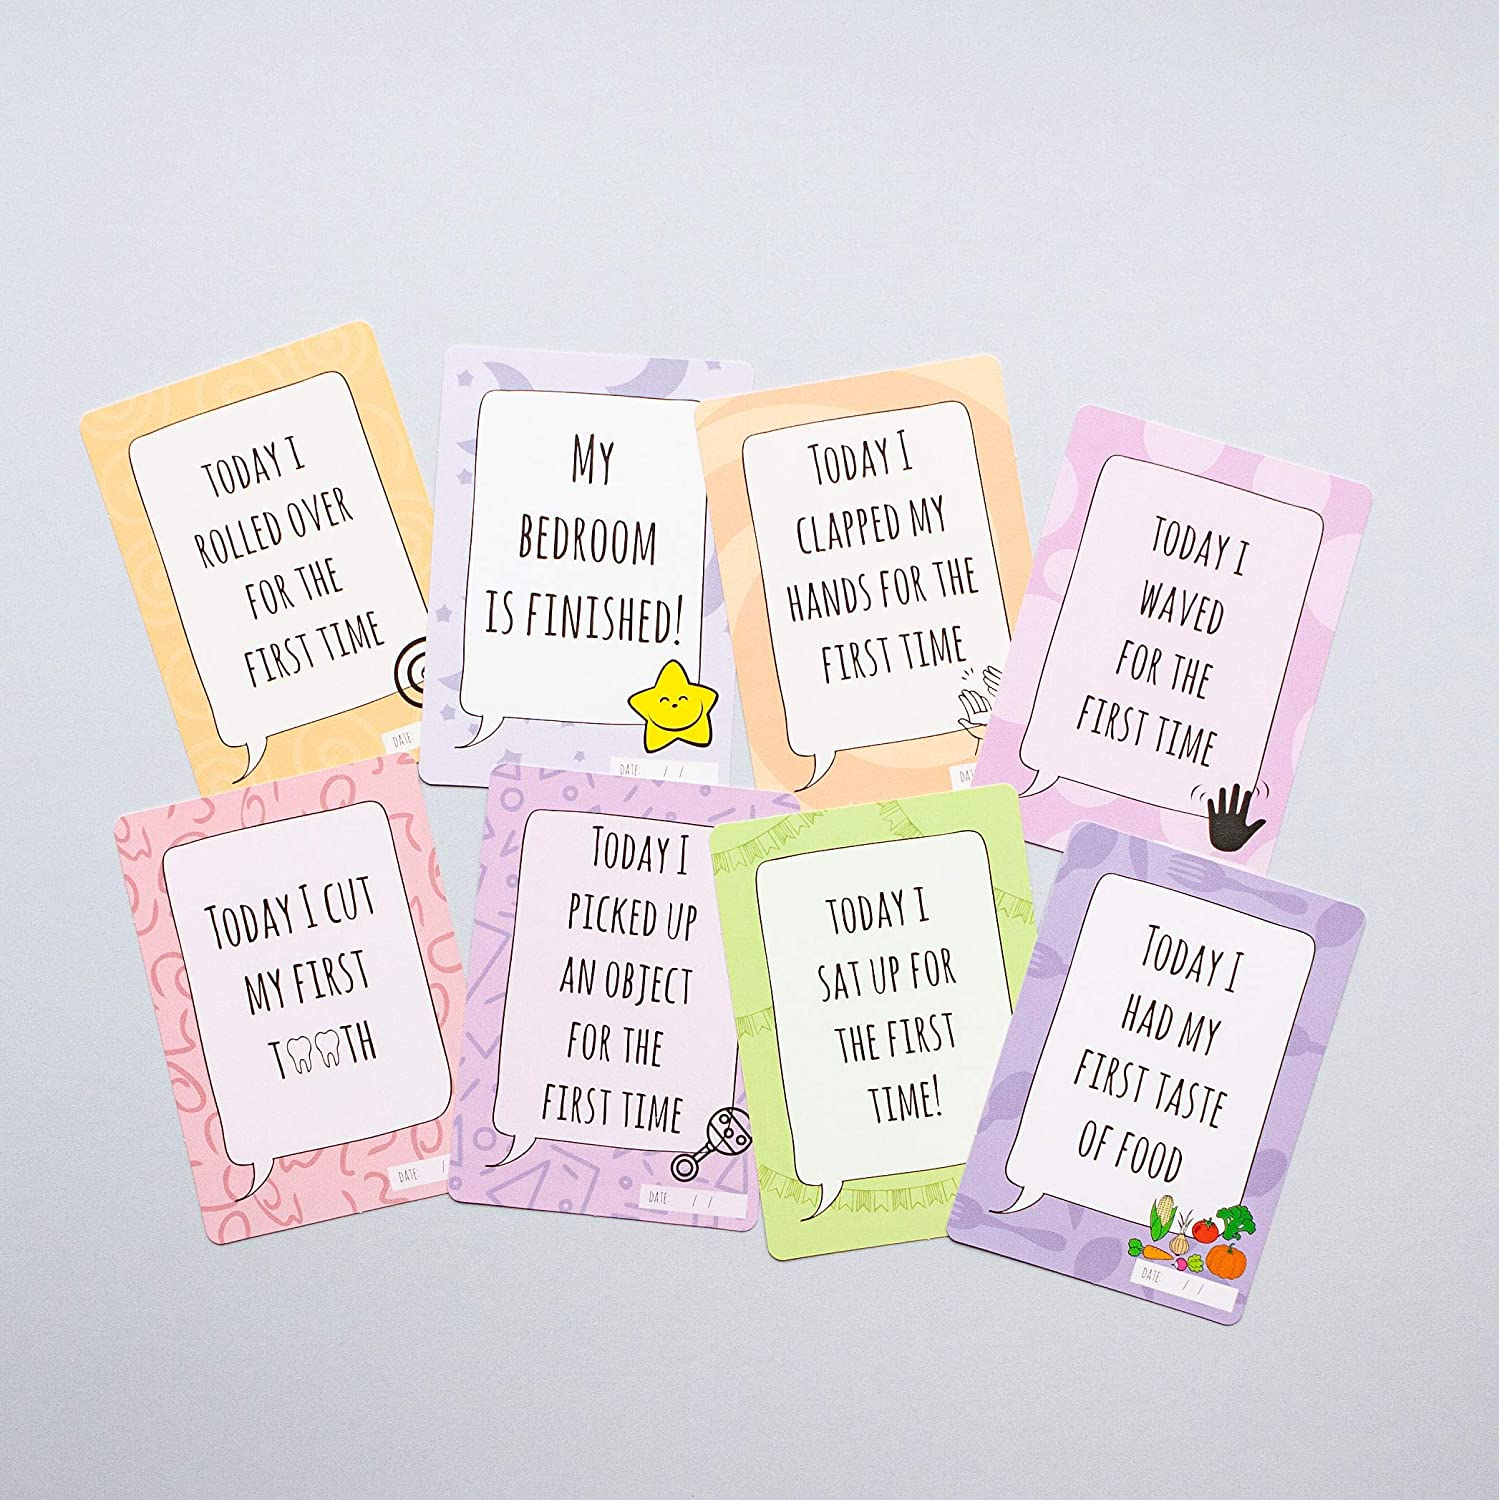 Baby Milestone Cards with Keepsake Box Ideal Baby Shower Gift for Expectant Parents for All Types of Family